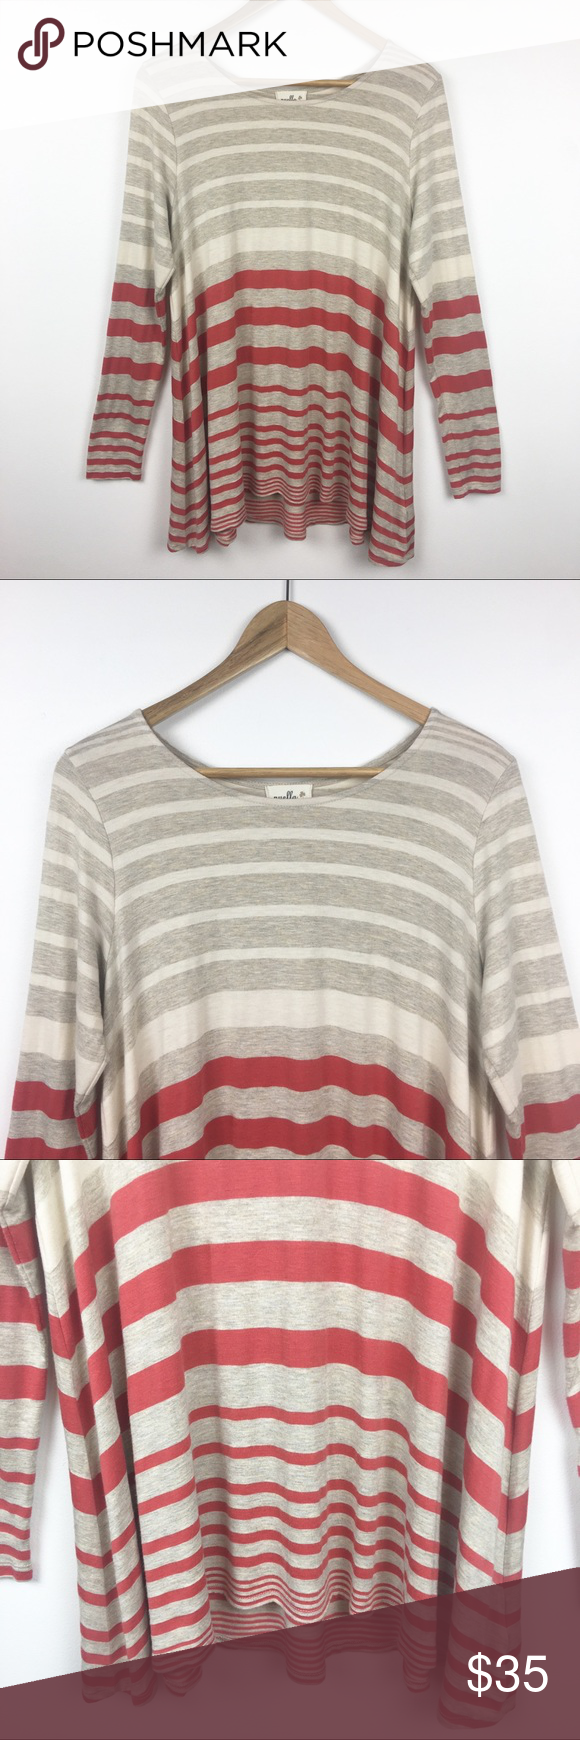 92210fb01a3 Anthropologie Puella Top Tunic Darcy Swing M This is an Anthropologie  Puella Darcy swing top tunic. Crew neck. Long sleeves. Orange ivory/cream.